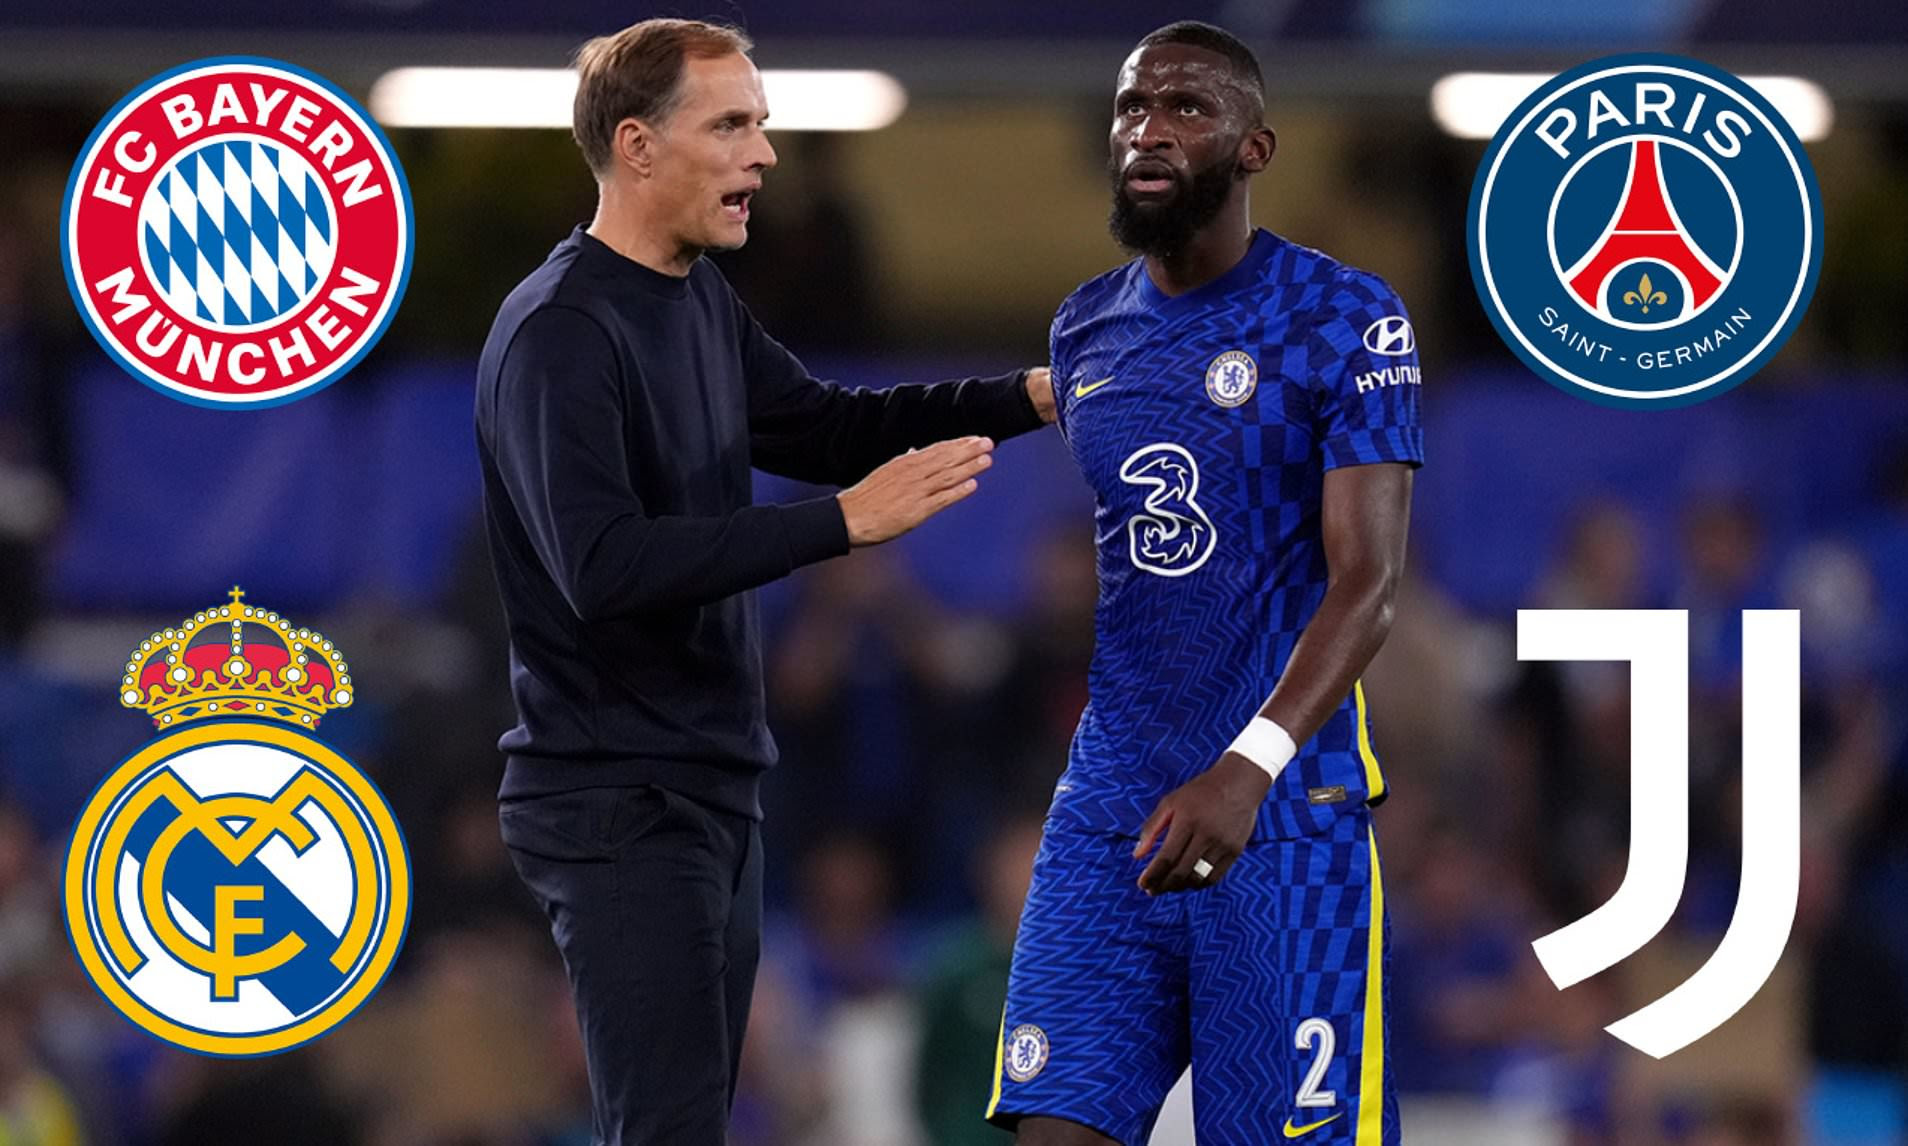 Chelsea face prospect of losing Antonio Rudiger for free next summer despite £125,000-a-week offer